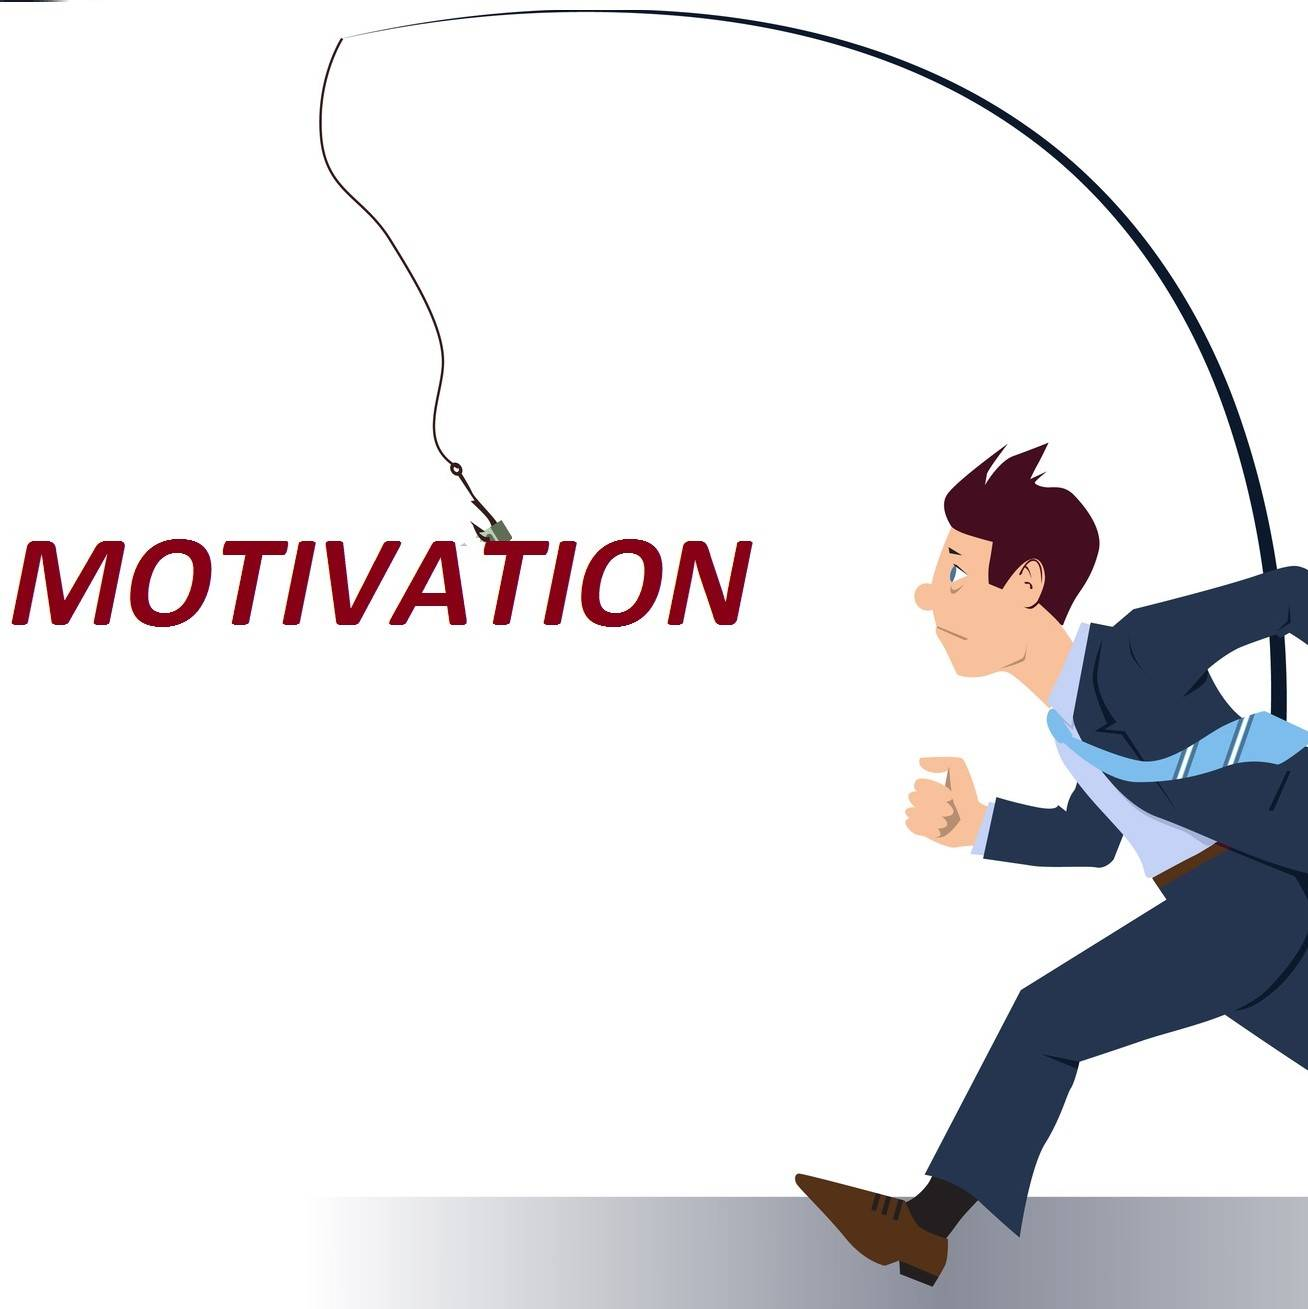 How to Figure Out What Motivates You at Work